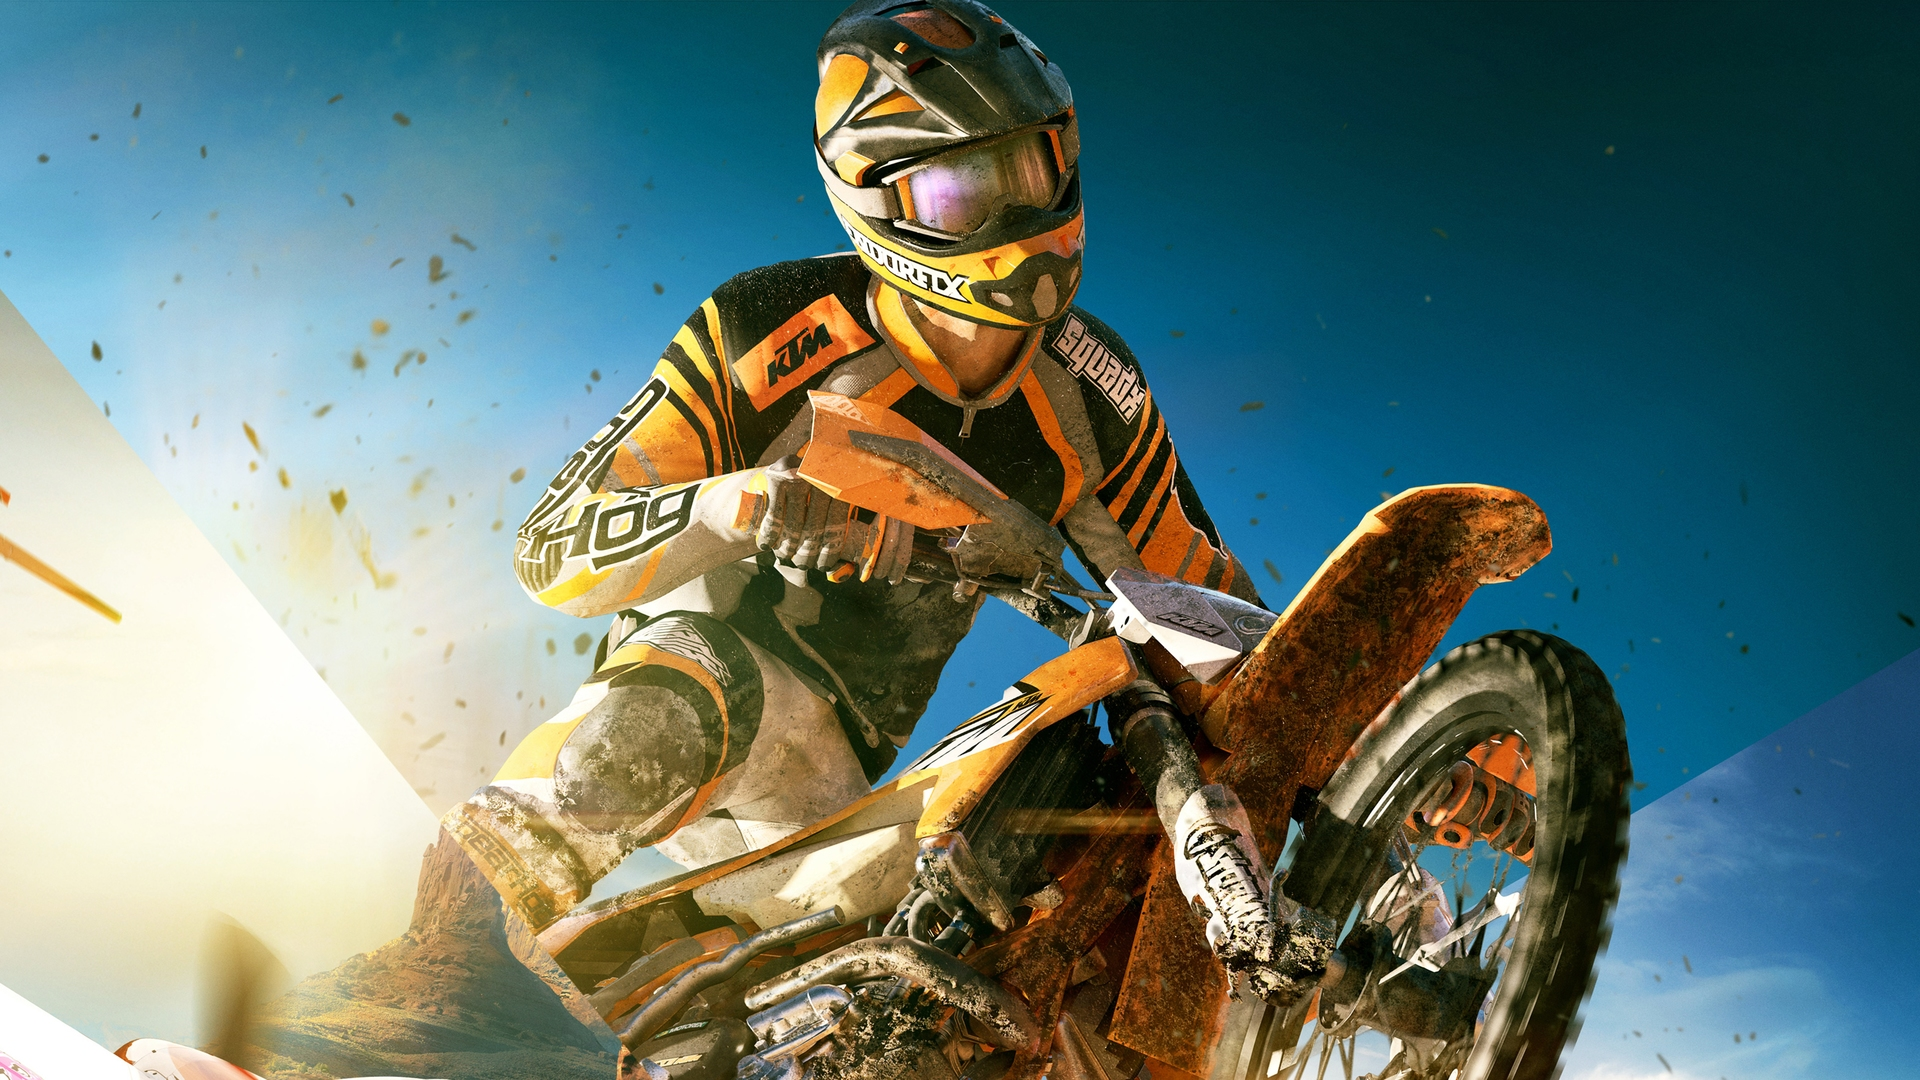 Show me pictures of dirt bikes